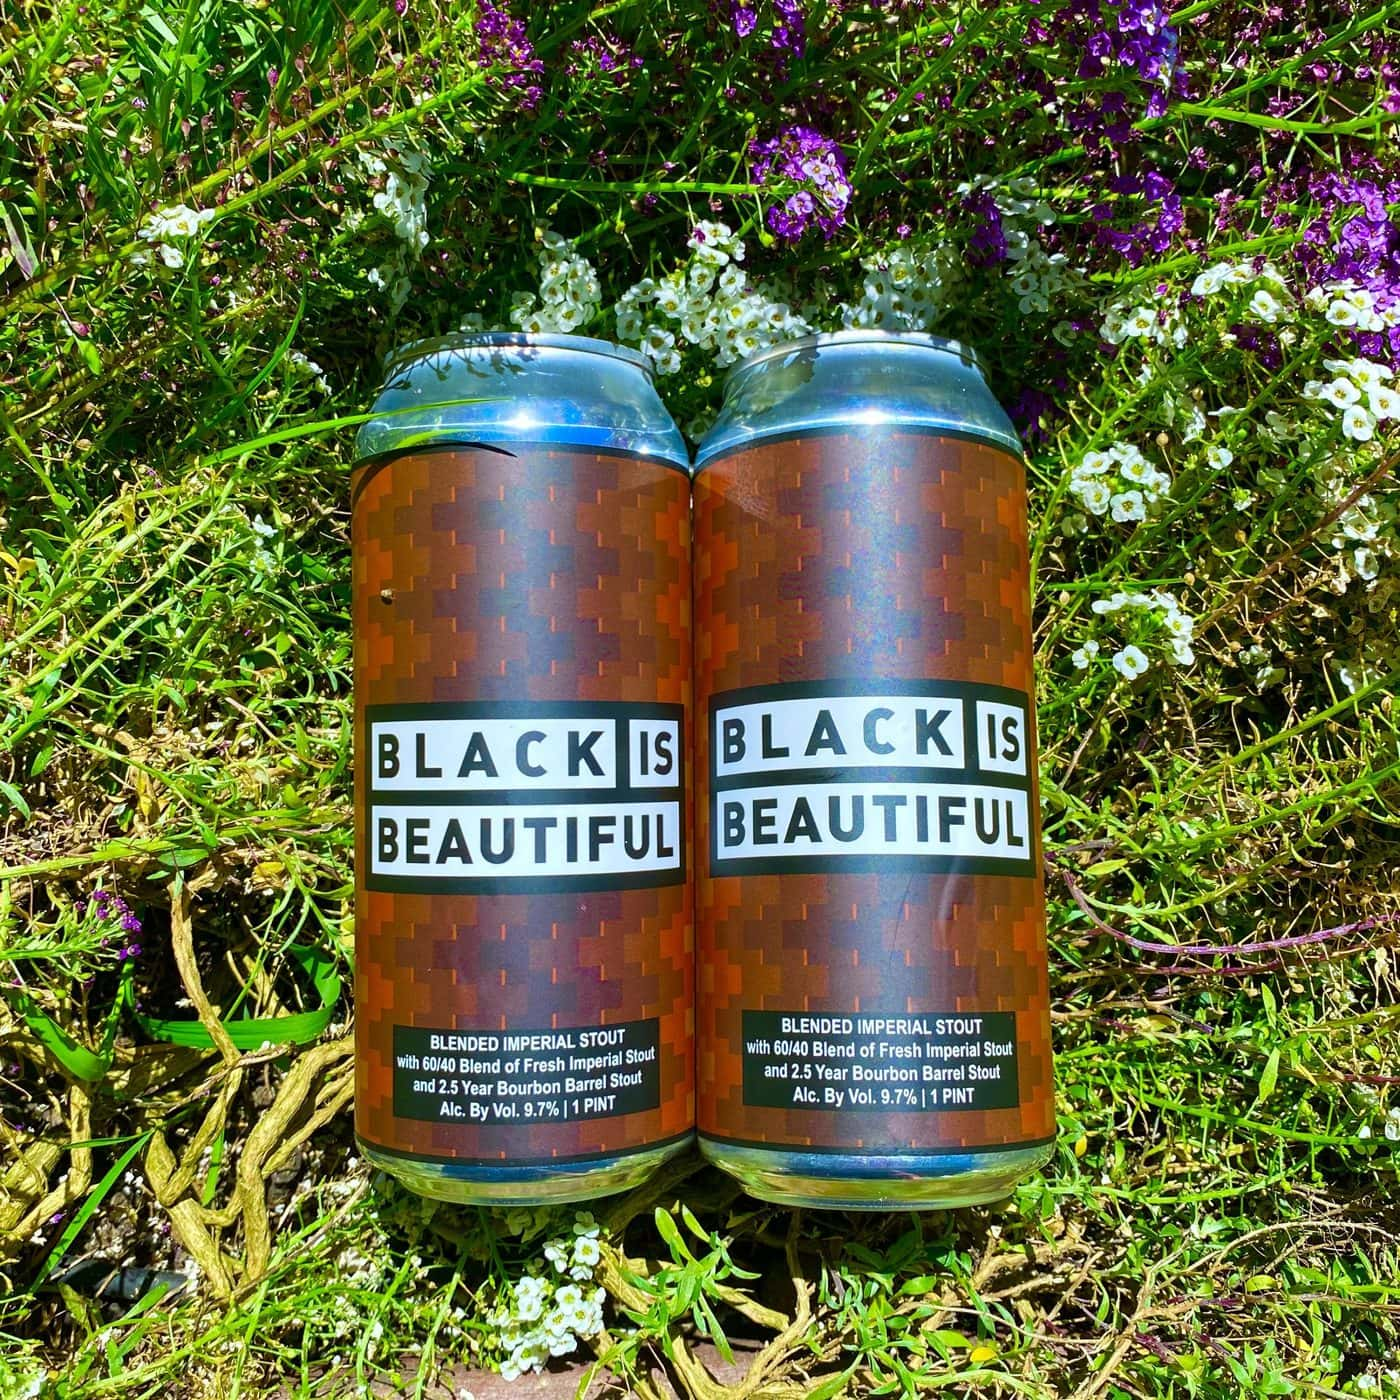 12 CANS Black Is Beautiful Blended Imperial Stout – Shipping Out Tuesday 6/22 For Next Day Delivery*